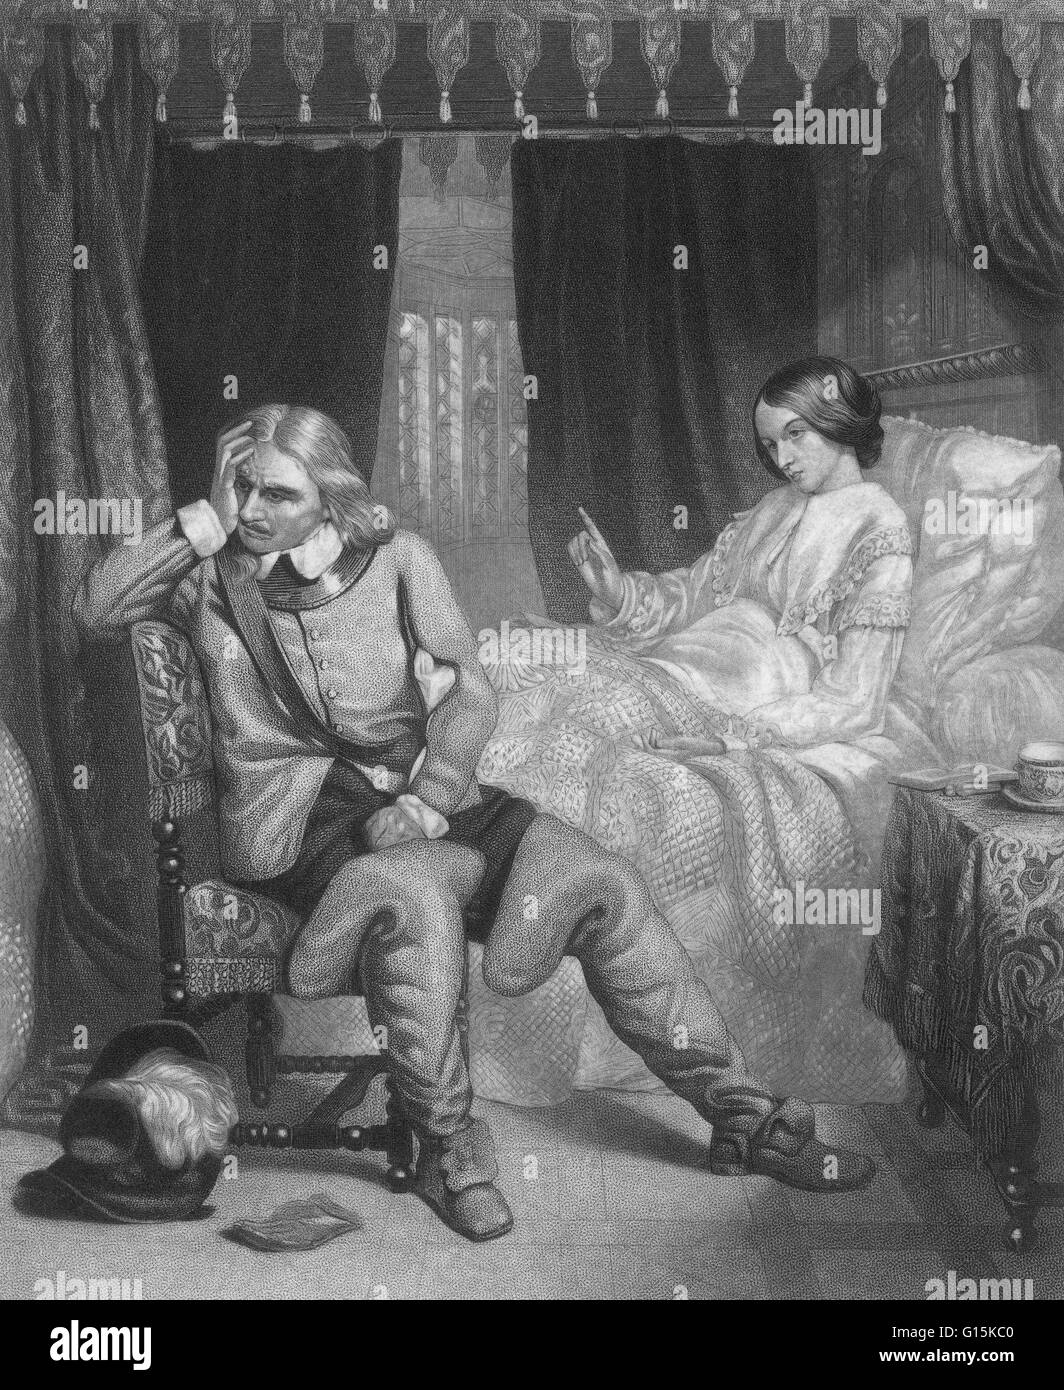 'Oliver Cromwell's last interview with his daughter,' an engraving from 1857 that imagines the death - Stock Image